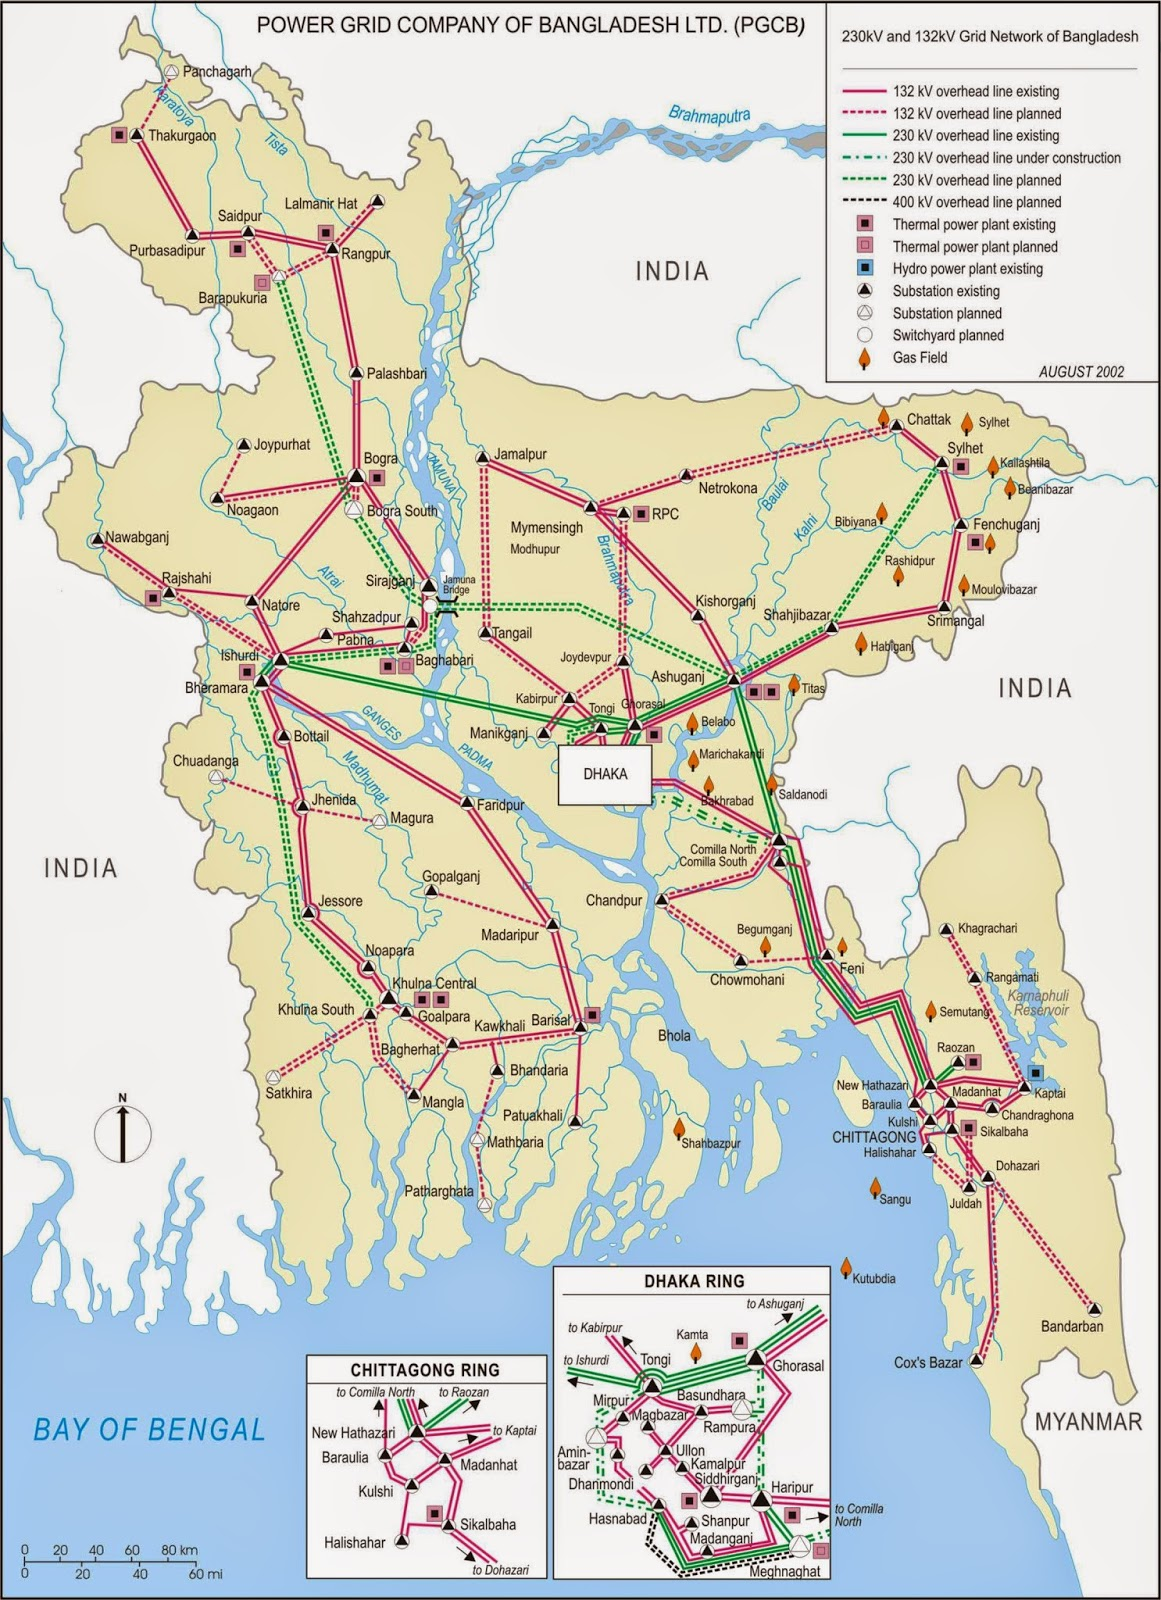 Bangladesh National Grid